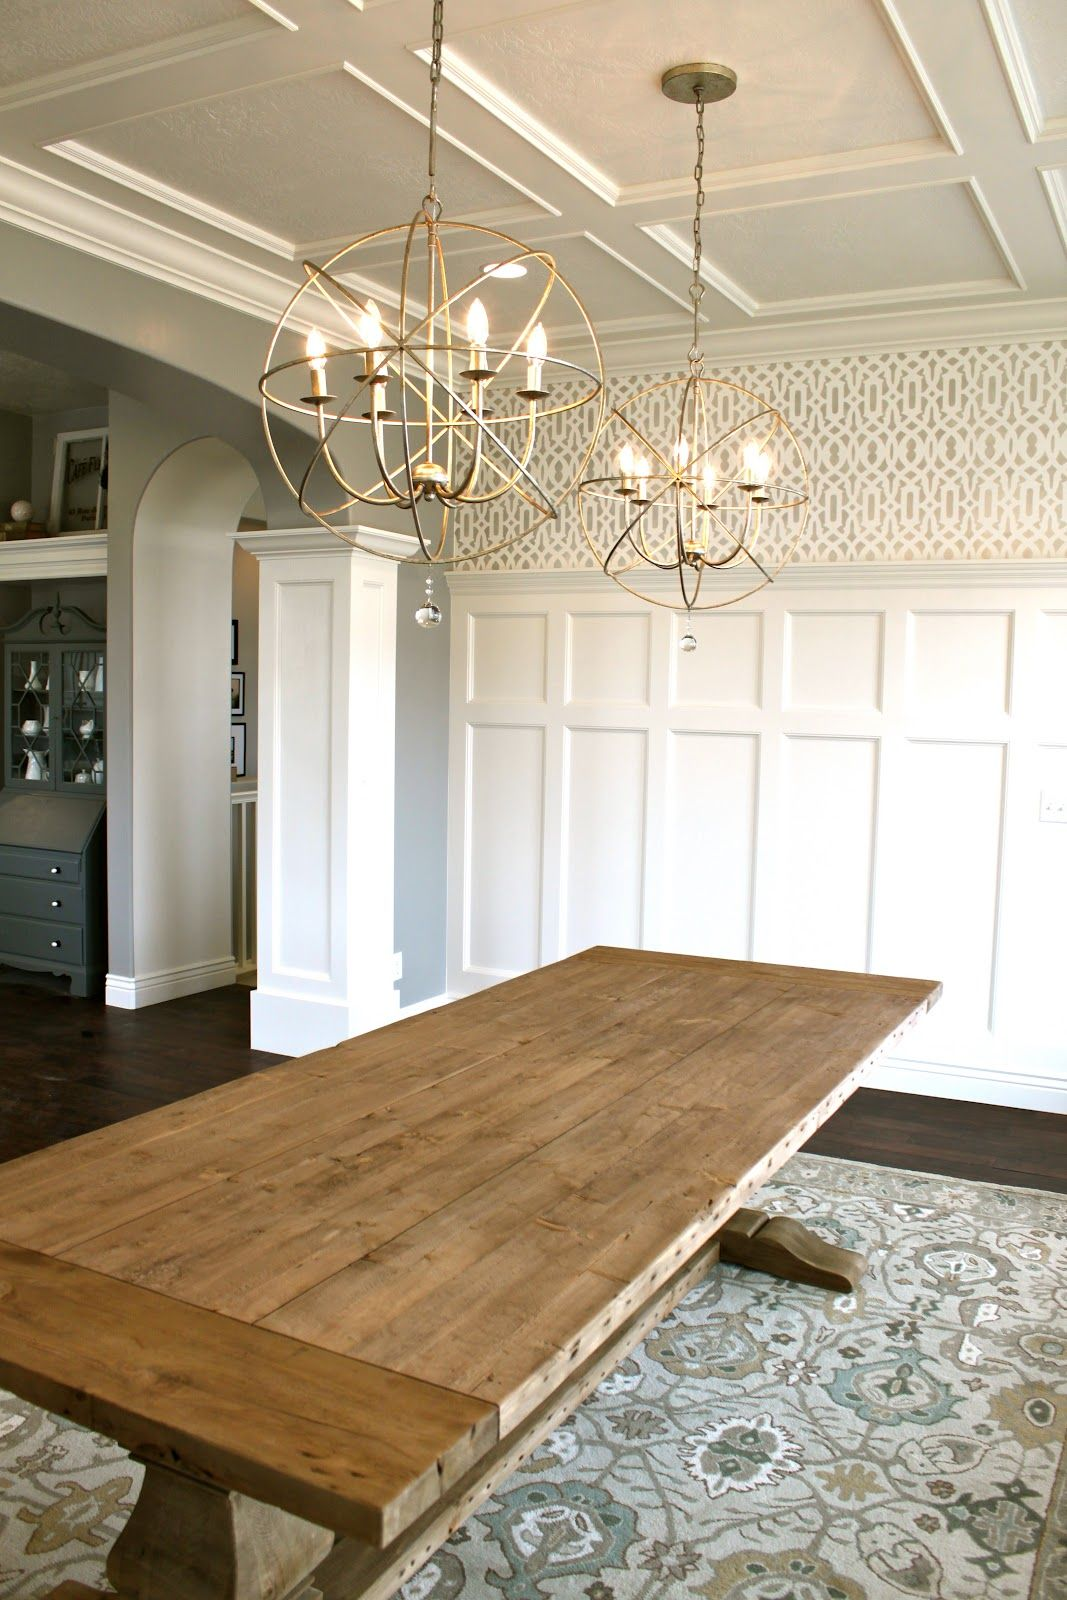 23 Dining Room Ceiling Designs Decorating Ideas: Farmhouse Dining, Home Decor, Dining Room Lighting